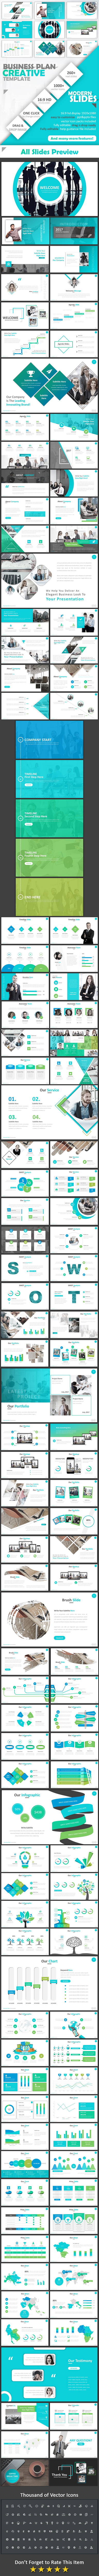 GraphicRiver Business Plan Powerpoint 20451411